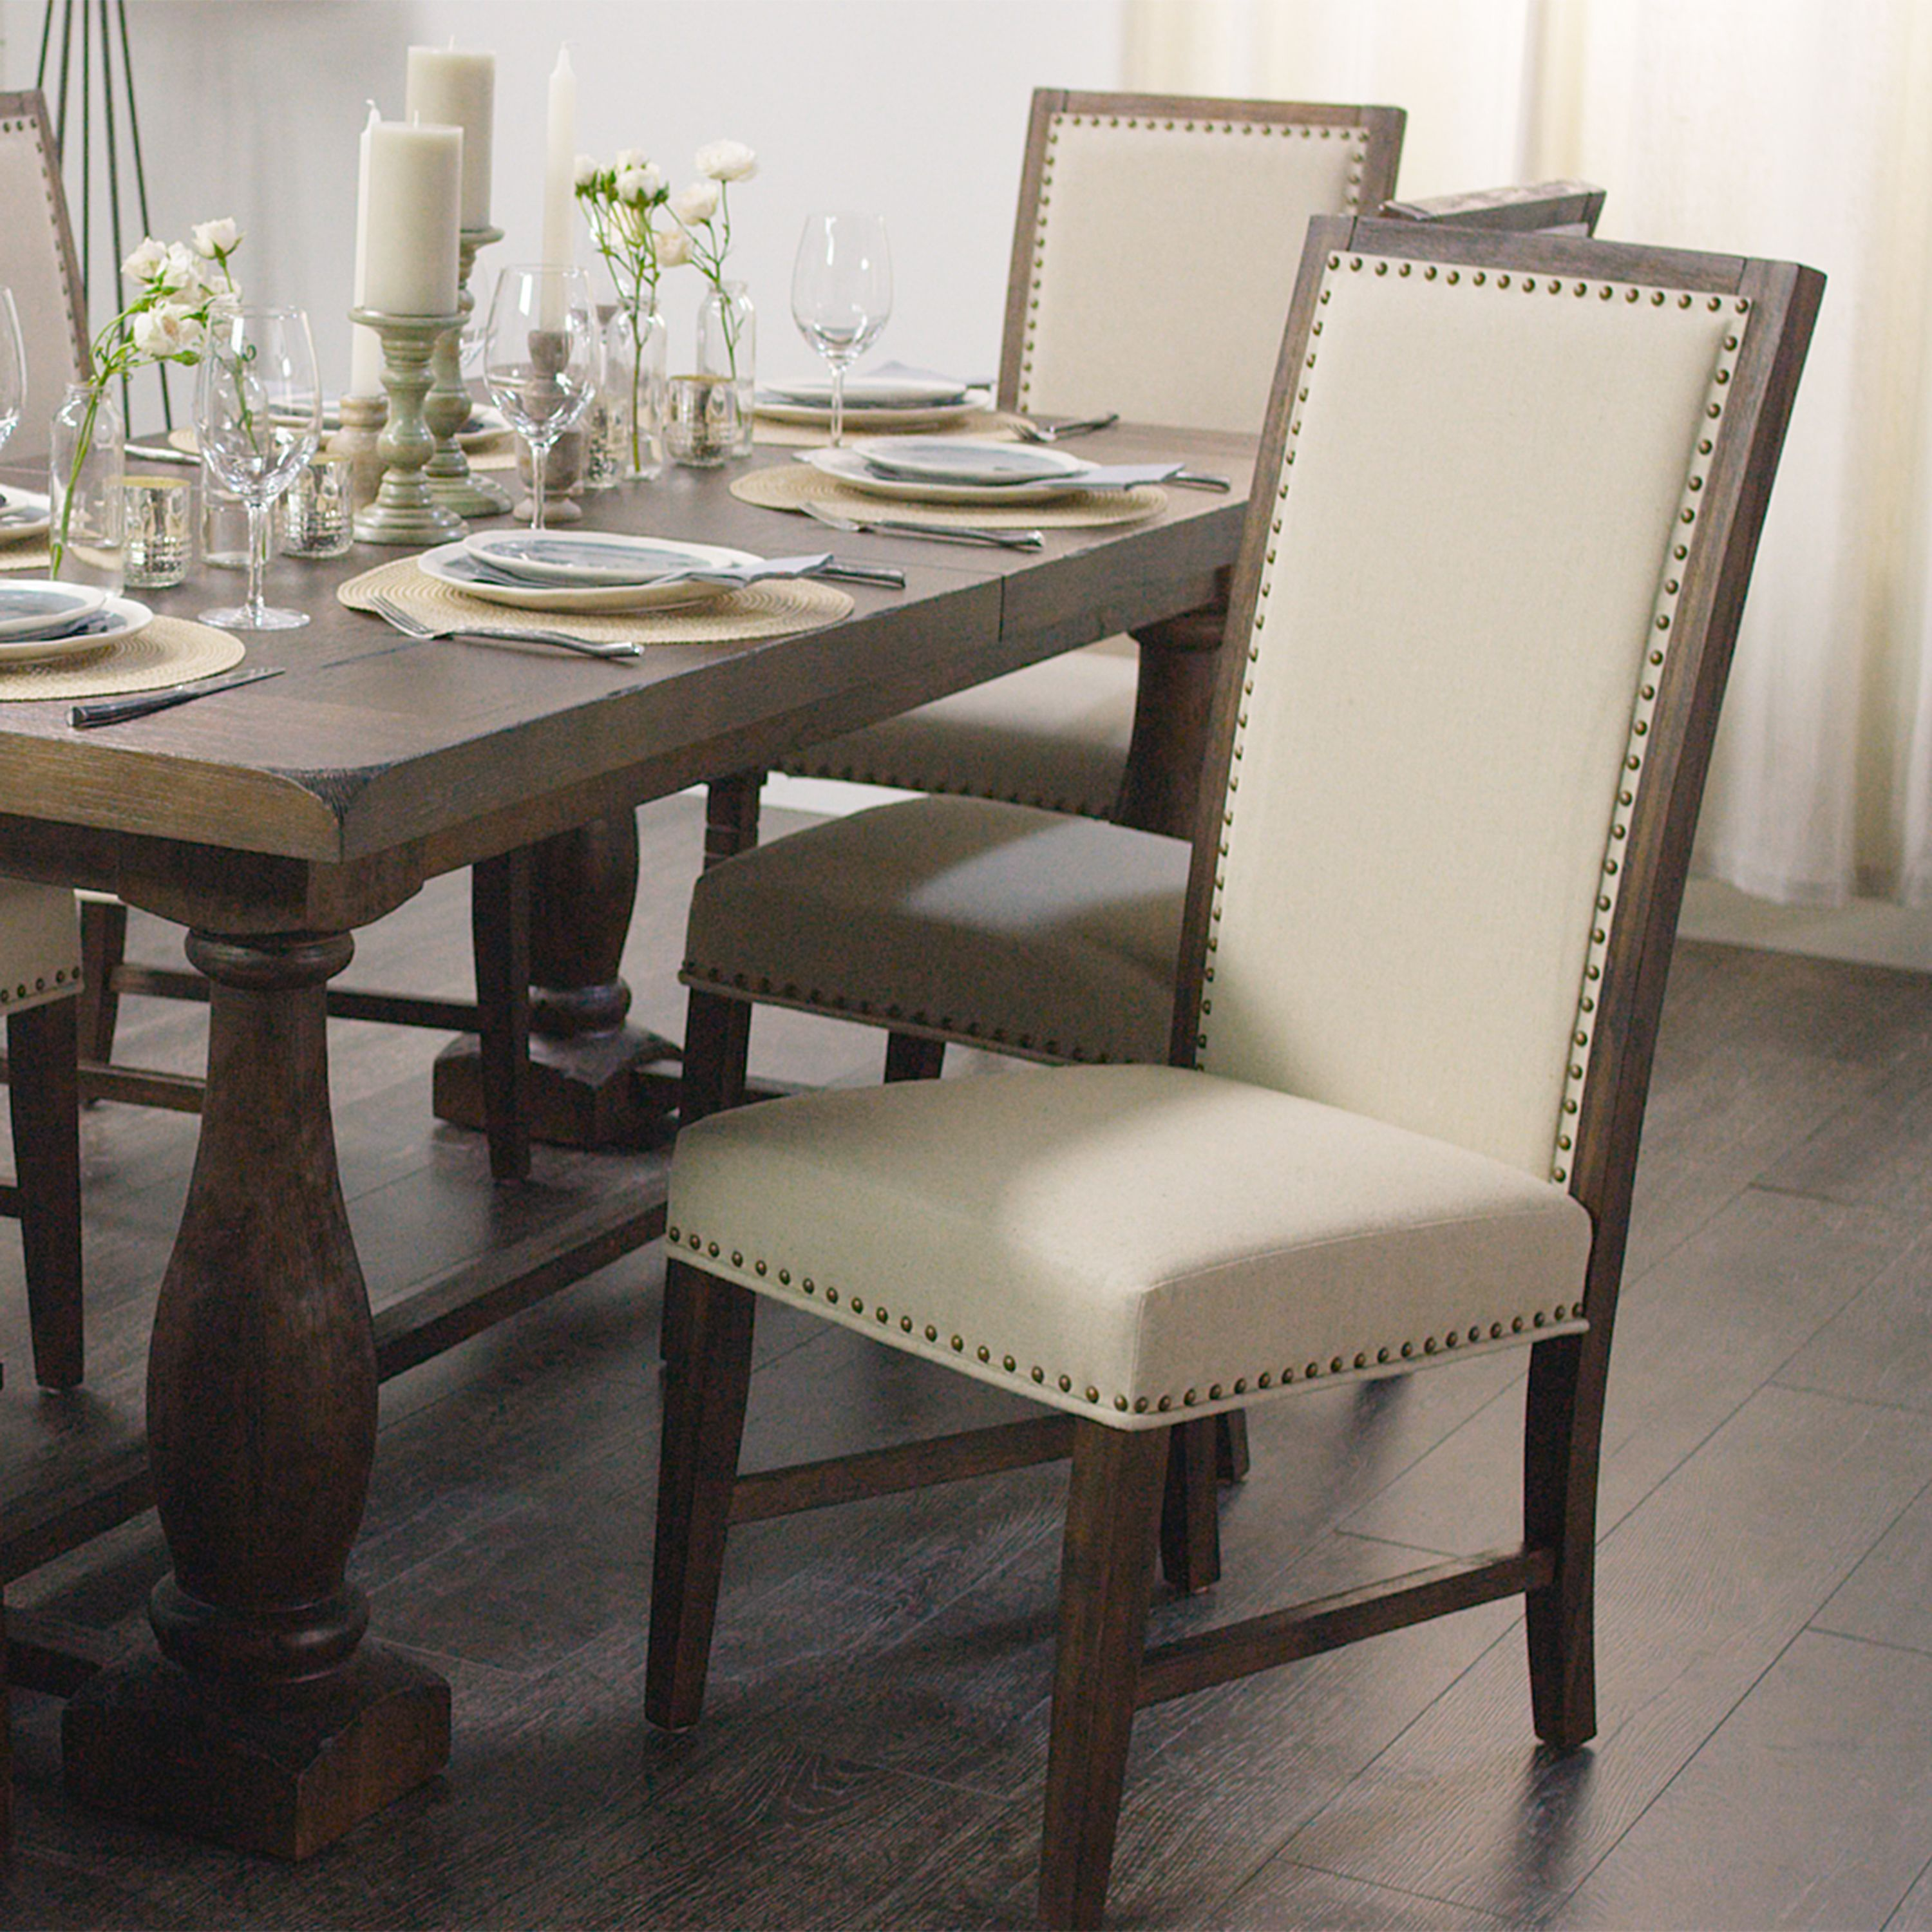 Upholstered in creamy linen our rustic java greyson side chair looks as if its been in the family for generations crafted of acacia wood with a textured